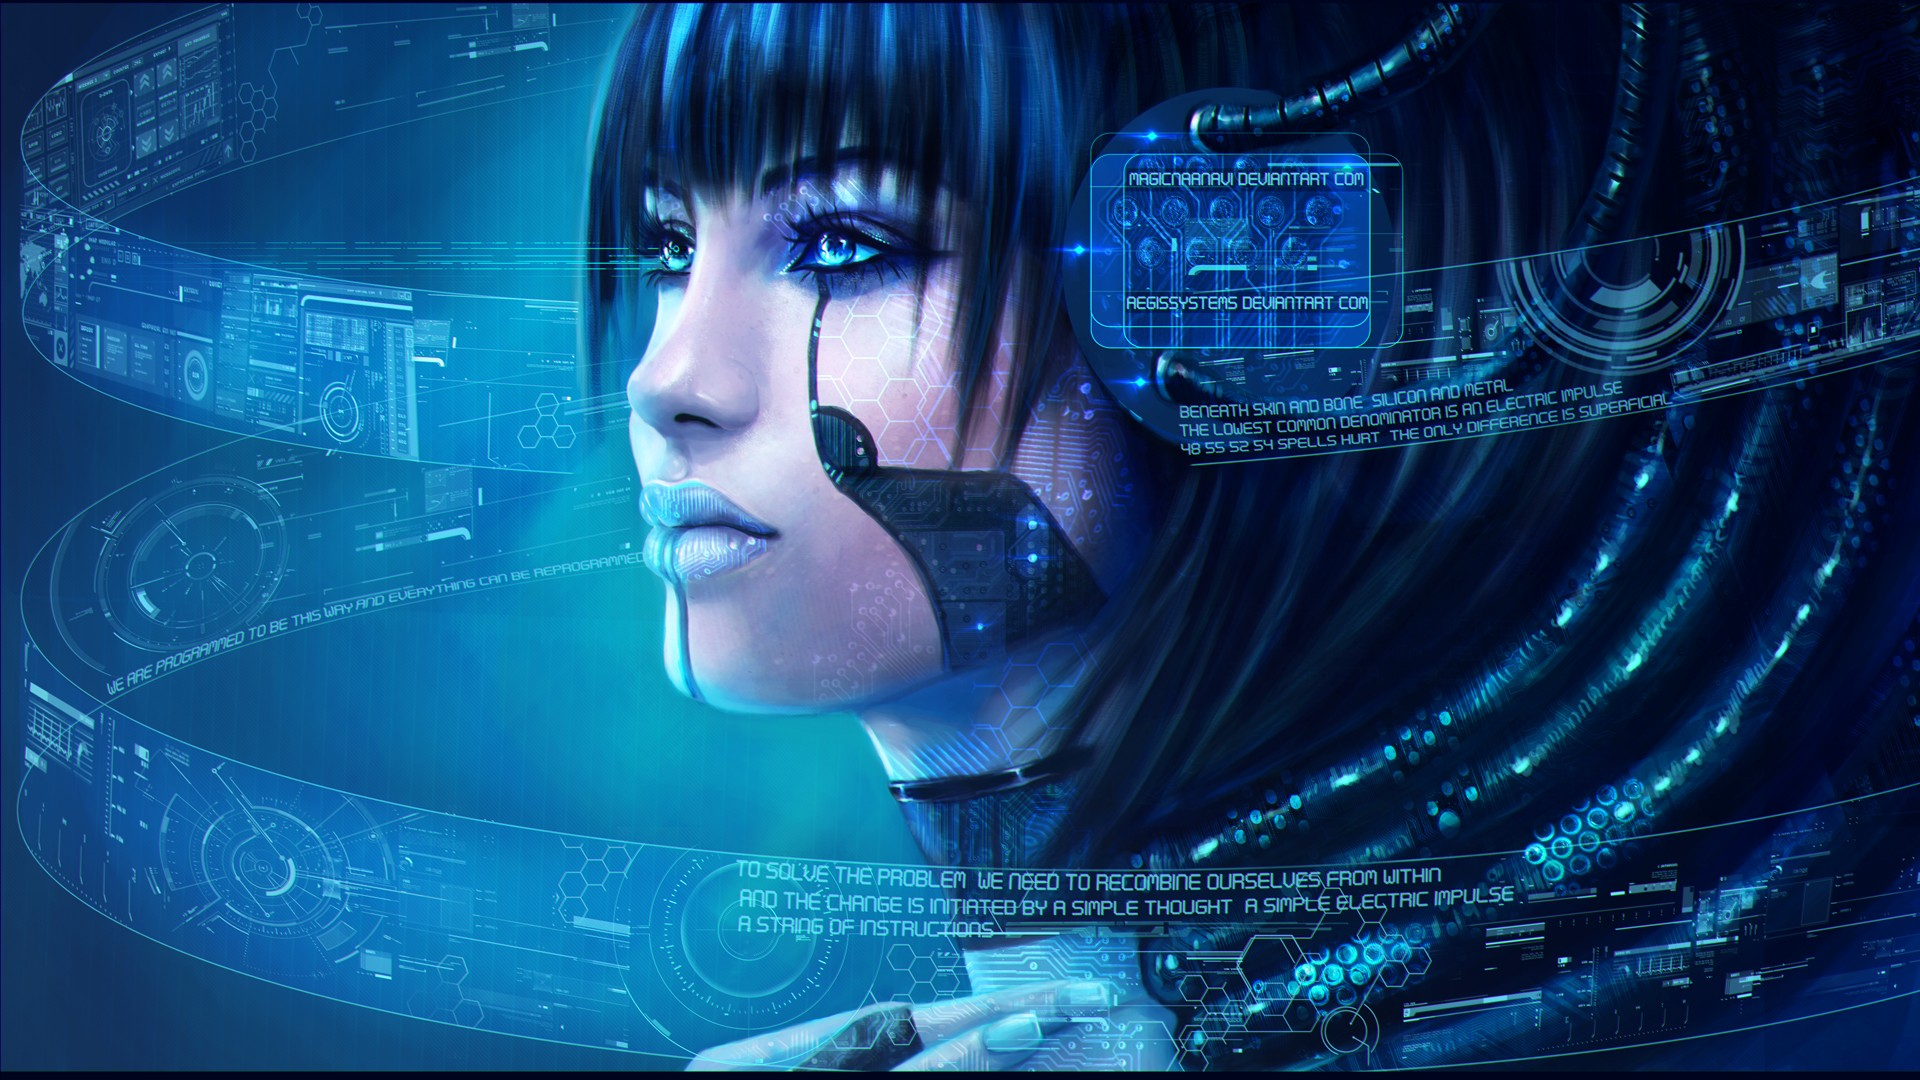 General 1920x1080 artwork video games cyborg futuristic women cyberpunk digital art blue Cortana Halo MagicnaAnavi technology blue eyes blue background wires blue lipstick space fantasy art robot HUD cyan science fiction video game art PC gaming DeviantArt